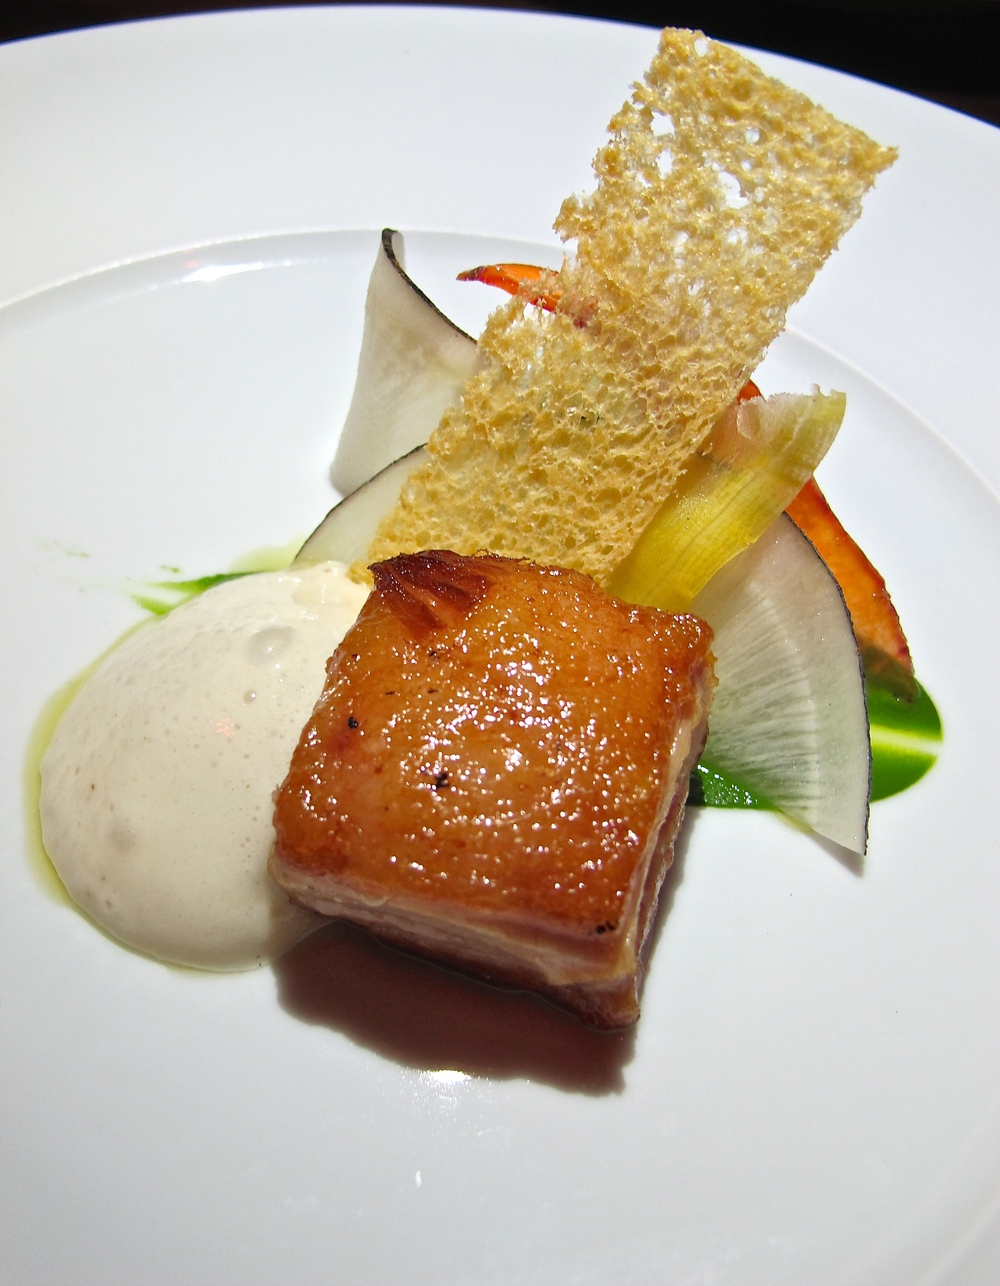 Maude pork belly